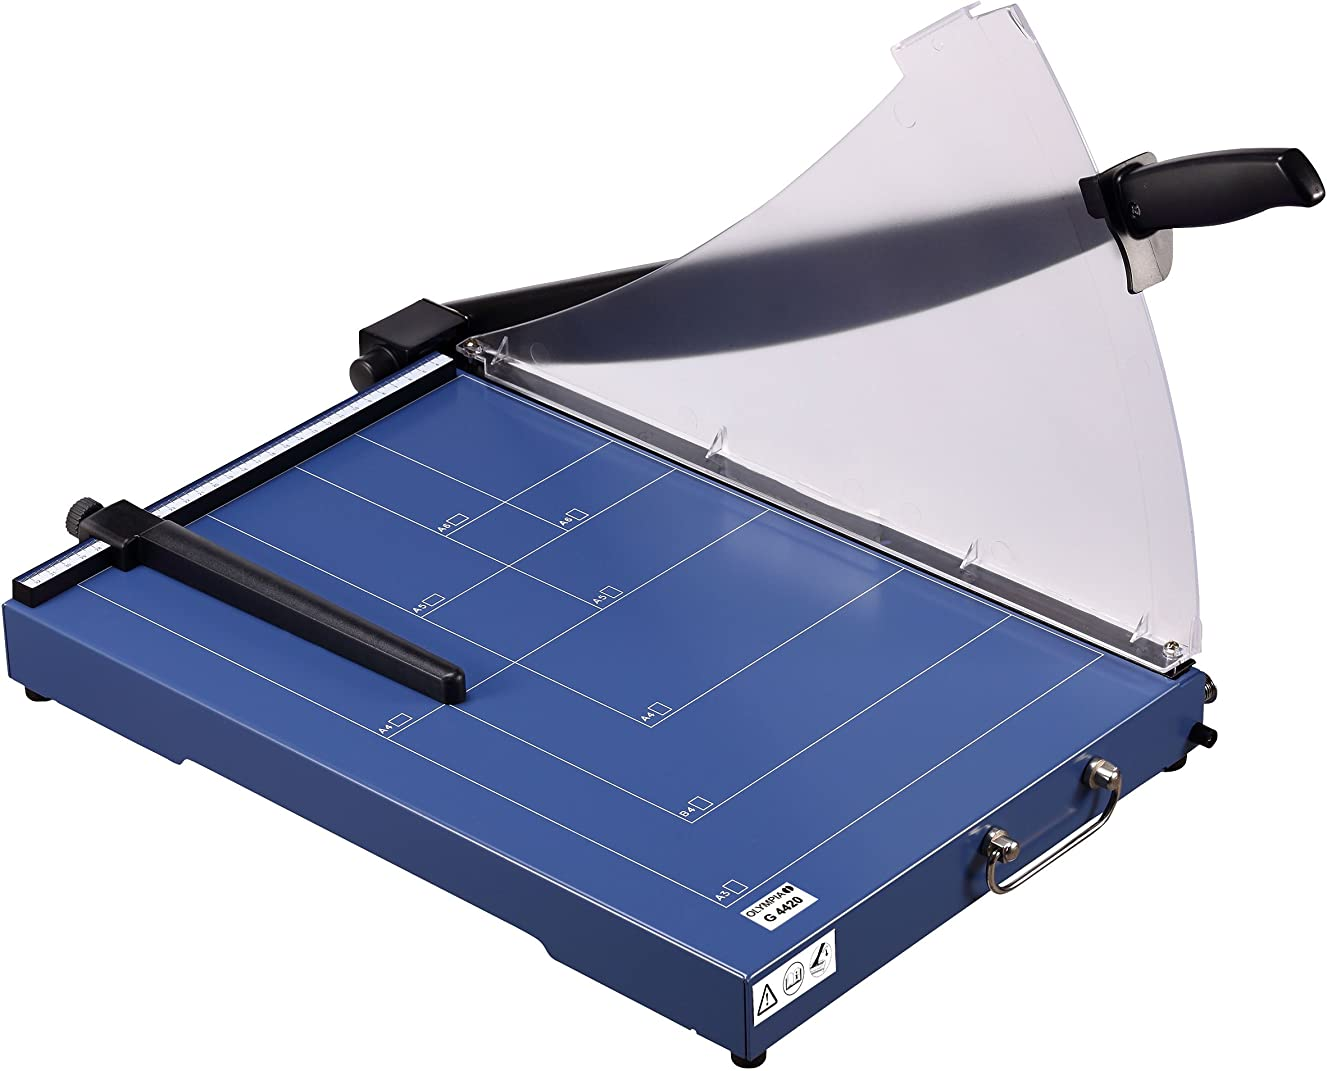 Olympia G 4420 448Mm 20Sheets Paper Cutter - Paper Cutters